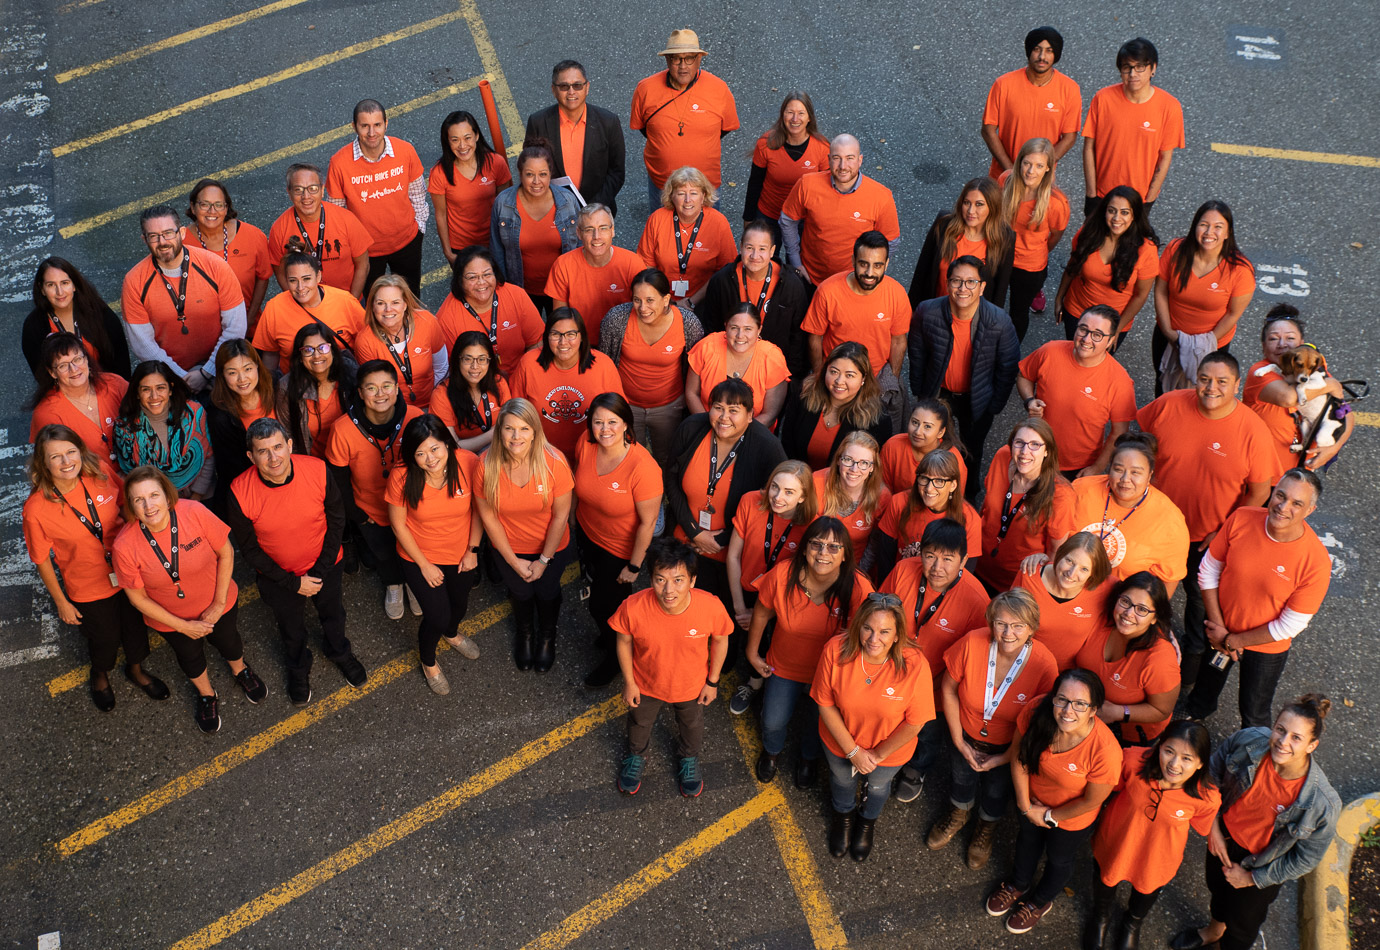 FNHA-Orange-Shirt-Day-2019-Group-1.jpg